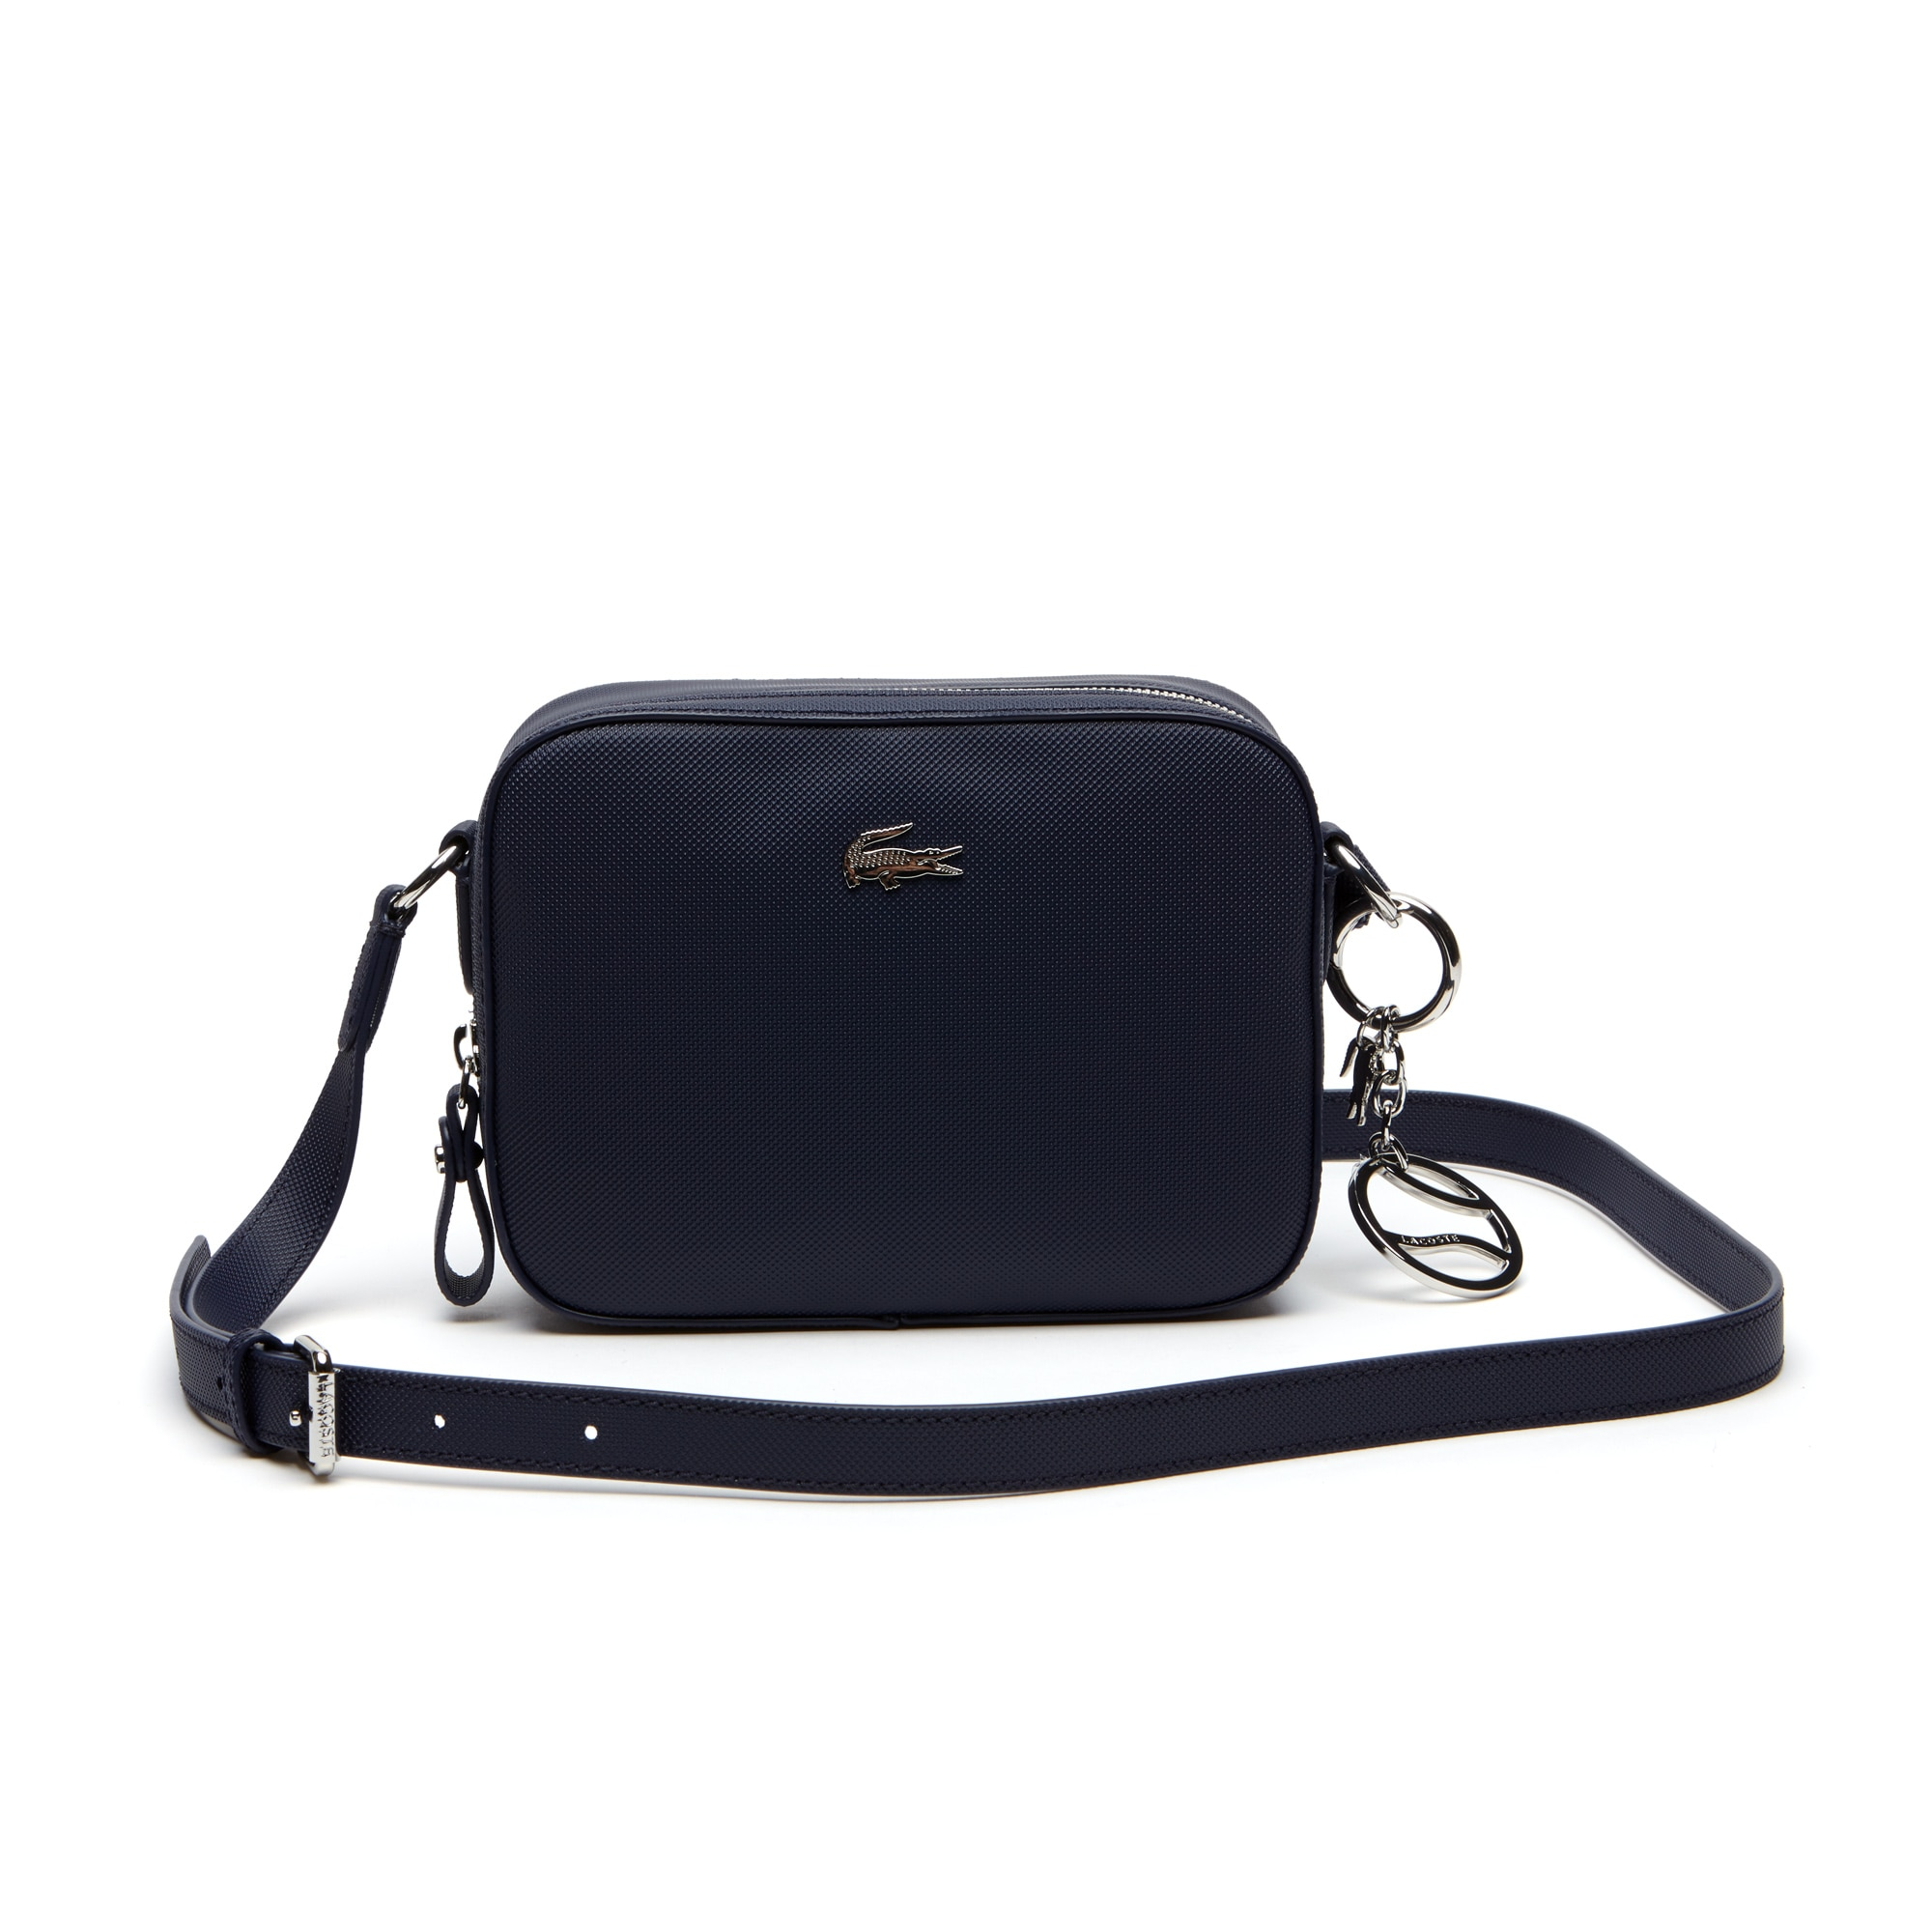 Women's Daily Classic Coated Piqué Canvas Square Crossover Bag